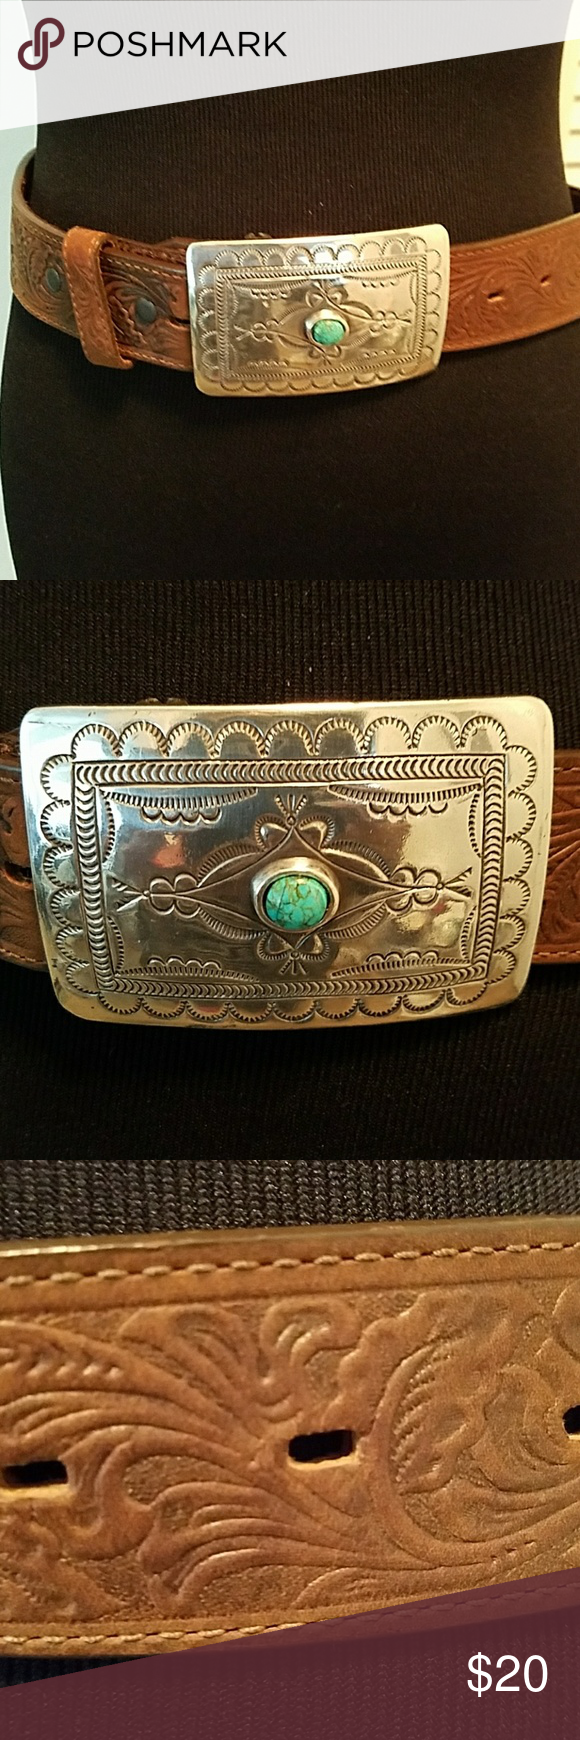 TONY LAMA LEATHER BELT WITH BUCKLE Pre owned in good condition but does show wear. Tony Lama Accessories Belts